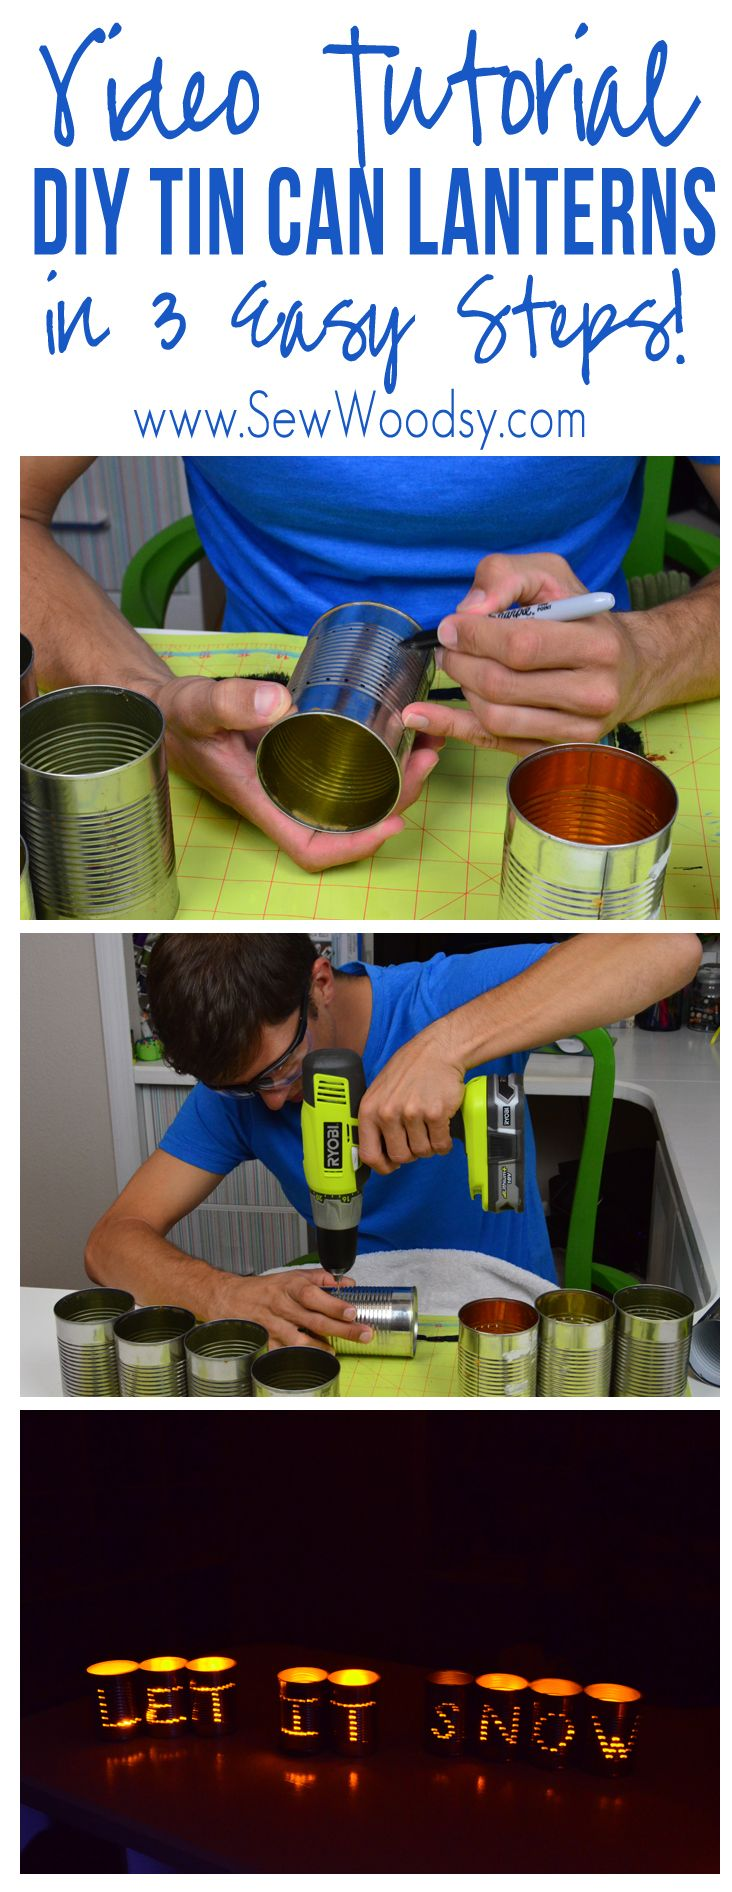 Video Tutorial -- DIY Tin Can Lanterns for @ForRent.com from SewWoodsy.com